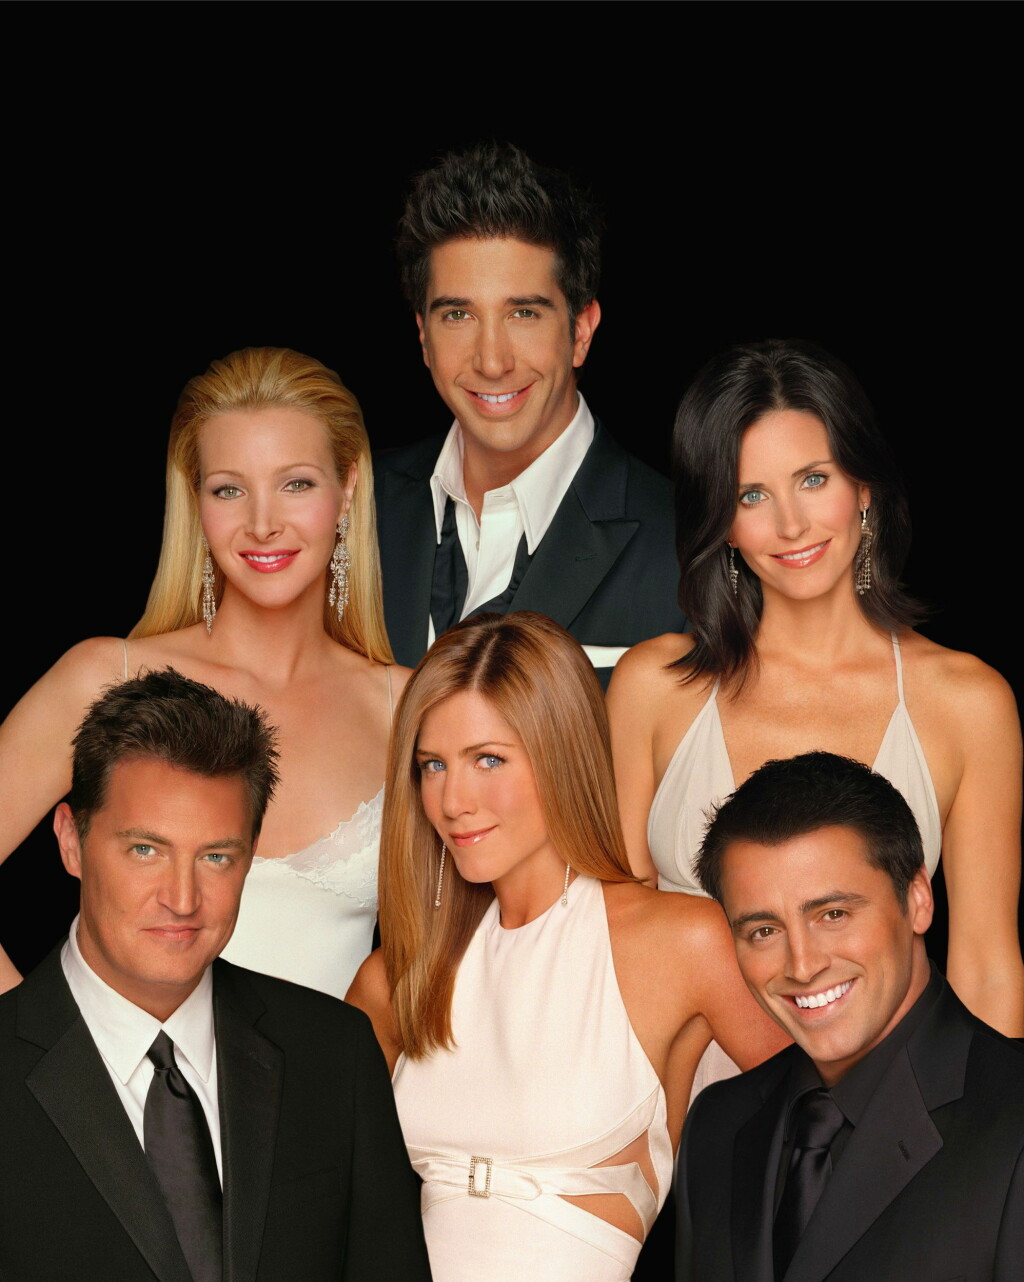 FRIENDS-GJENGEN: Chandler (Matthew Perry), Rachel (Jennifer Aniston), Joey (Matt LeBlanc), Phoebe (Lisa Kudrow), Ross (David Schwimmer), and Monica (Courteney Cox Arquette). Foto: All Over Press